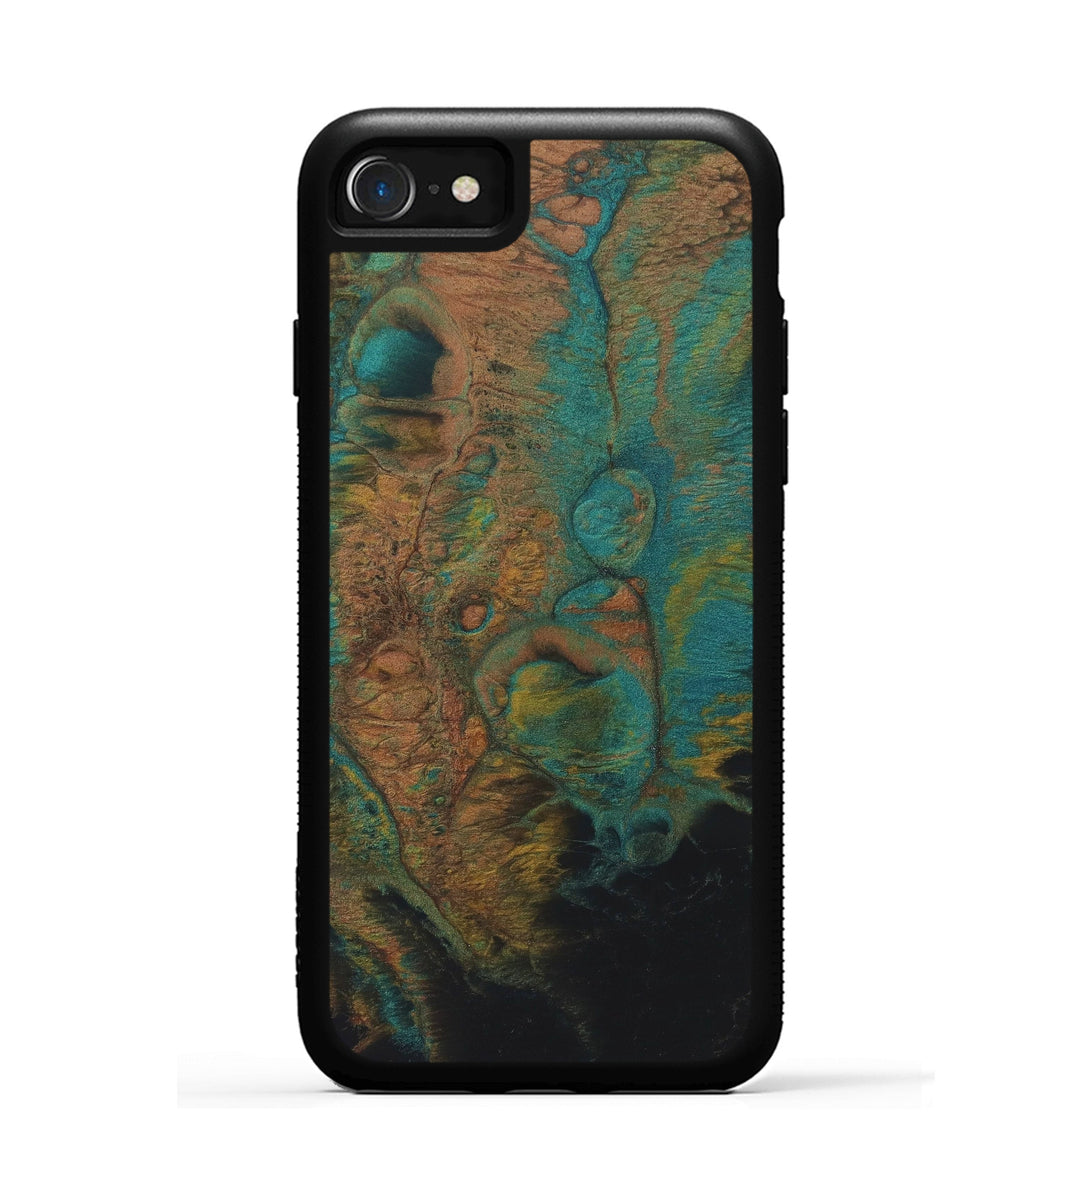 iPhone 8 ResinArt Phone Case - Andrea (Teal & Gold, 347663)